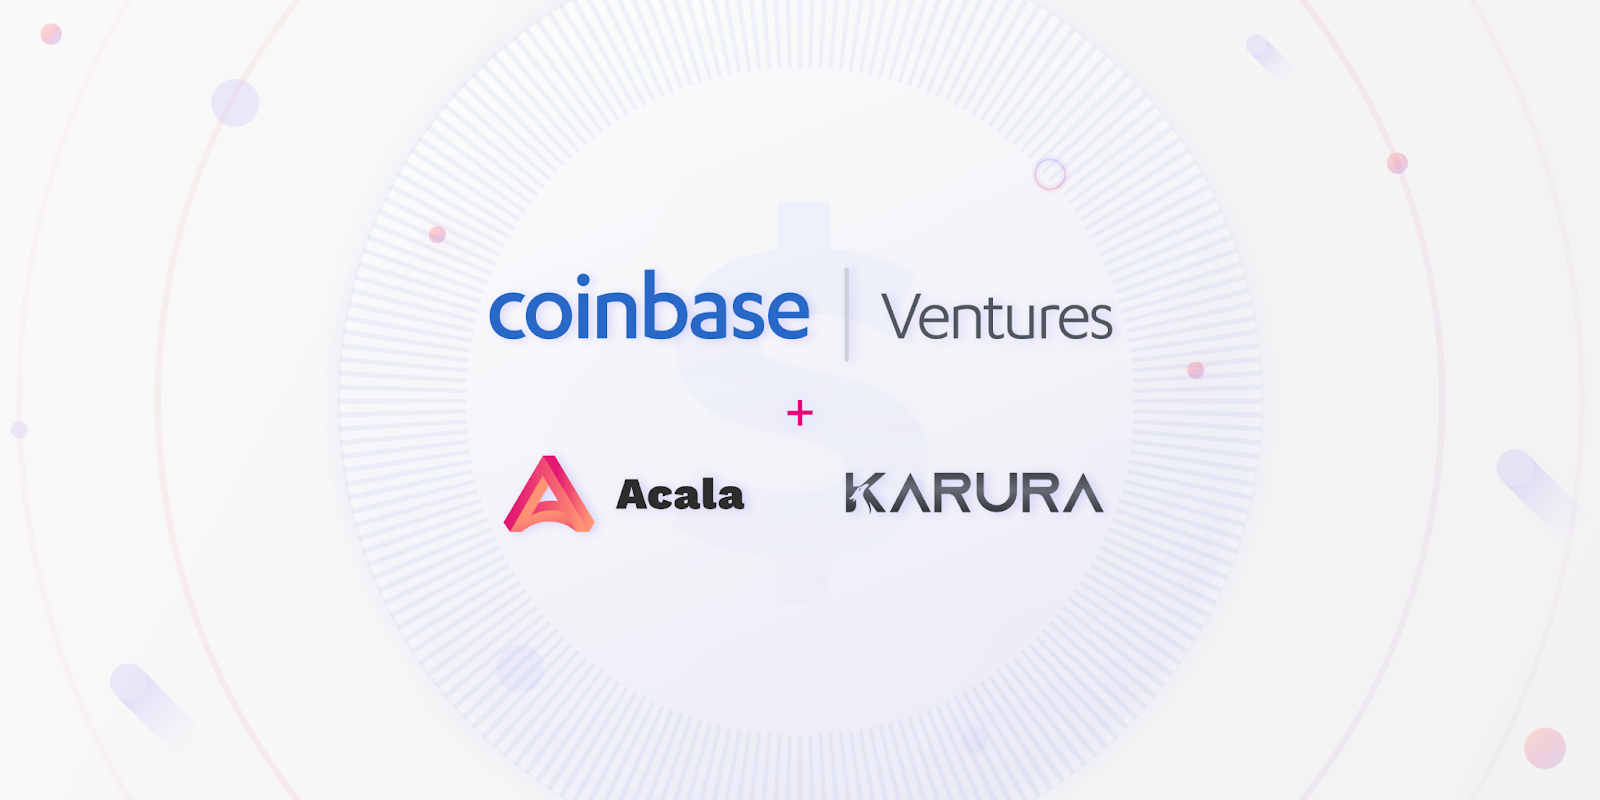 Coinbase Ventures invested an unspecified sum in Acala